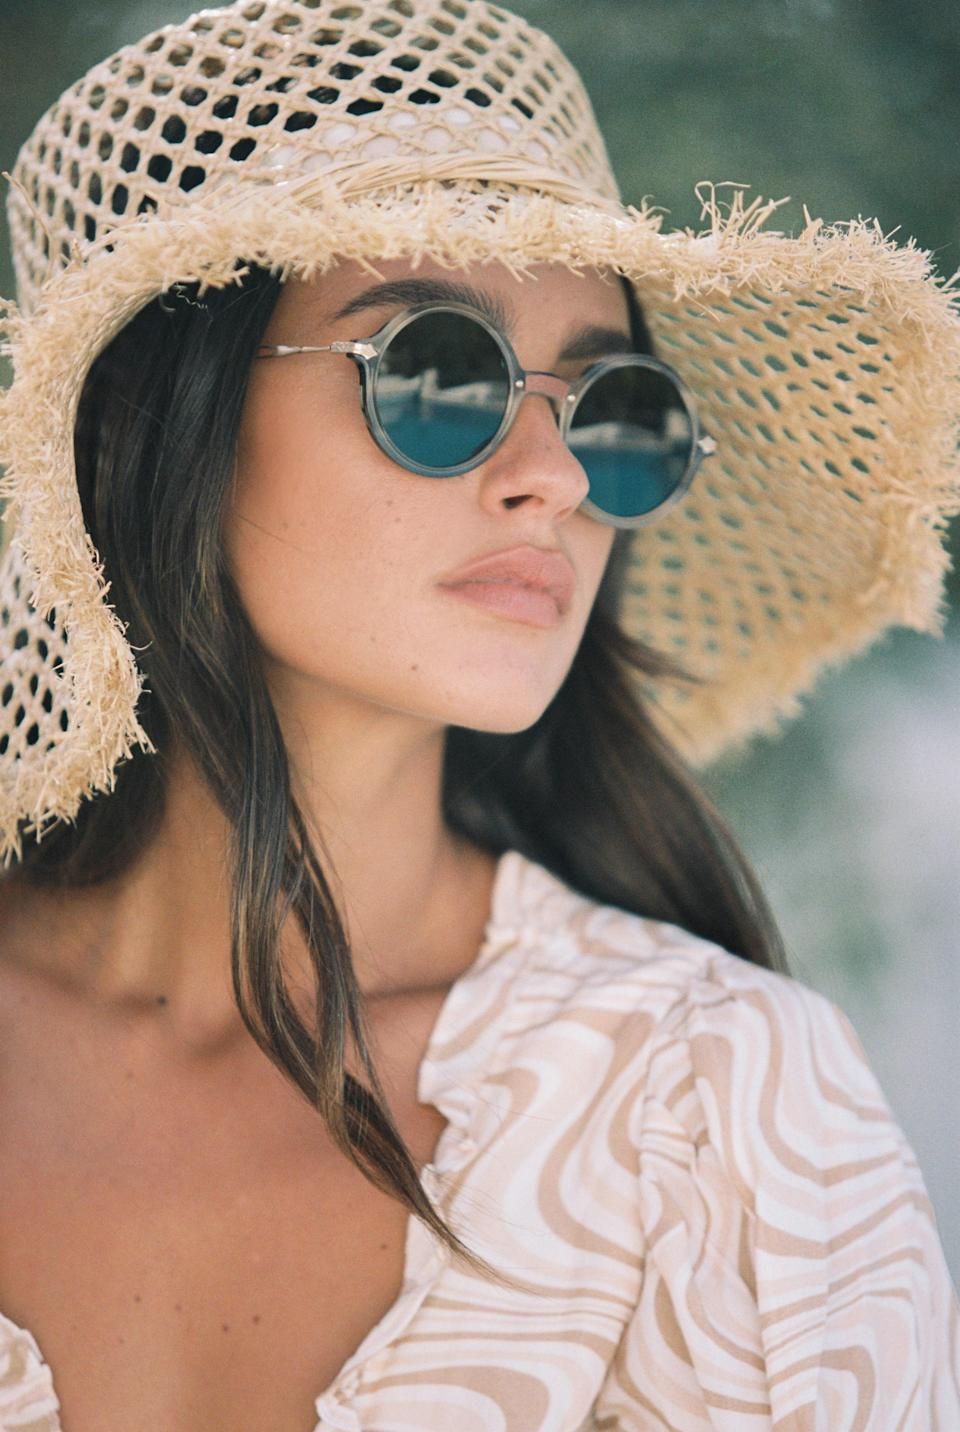 """<p>Inspired by nature, Paeo Los Angeles presents their timeless collection of sunglasses. Each pair is artfully crafted to provide lasting comfort whilst keeping style at the forefront of their designs. The brand invites you to become part of their community, allowing you to be inspired and authentically express yourself. <a href=""""https://paeola.com/"""" rel=""""nofollow noopener"""" target=""""_blank"""" data-ylk=""""slk:paeola.com"""" class=""""link rapid-noclick-resp"""">paeola.com</a></p> <p><em>Follow them on Instagram</em> <a href=""""https://www.instagram.com/paeolosangeles/?hl=en"""" rel=""""nofollow noopener"""" target=""""_blank"""" data-ylk=""""slk:@paeolosangeles"""" class=""""link rapid-noclick-resp""""><em>@paeolosangeles</em></a></p>"""